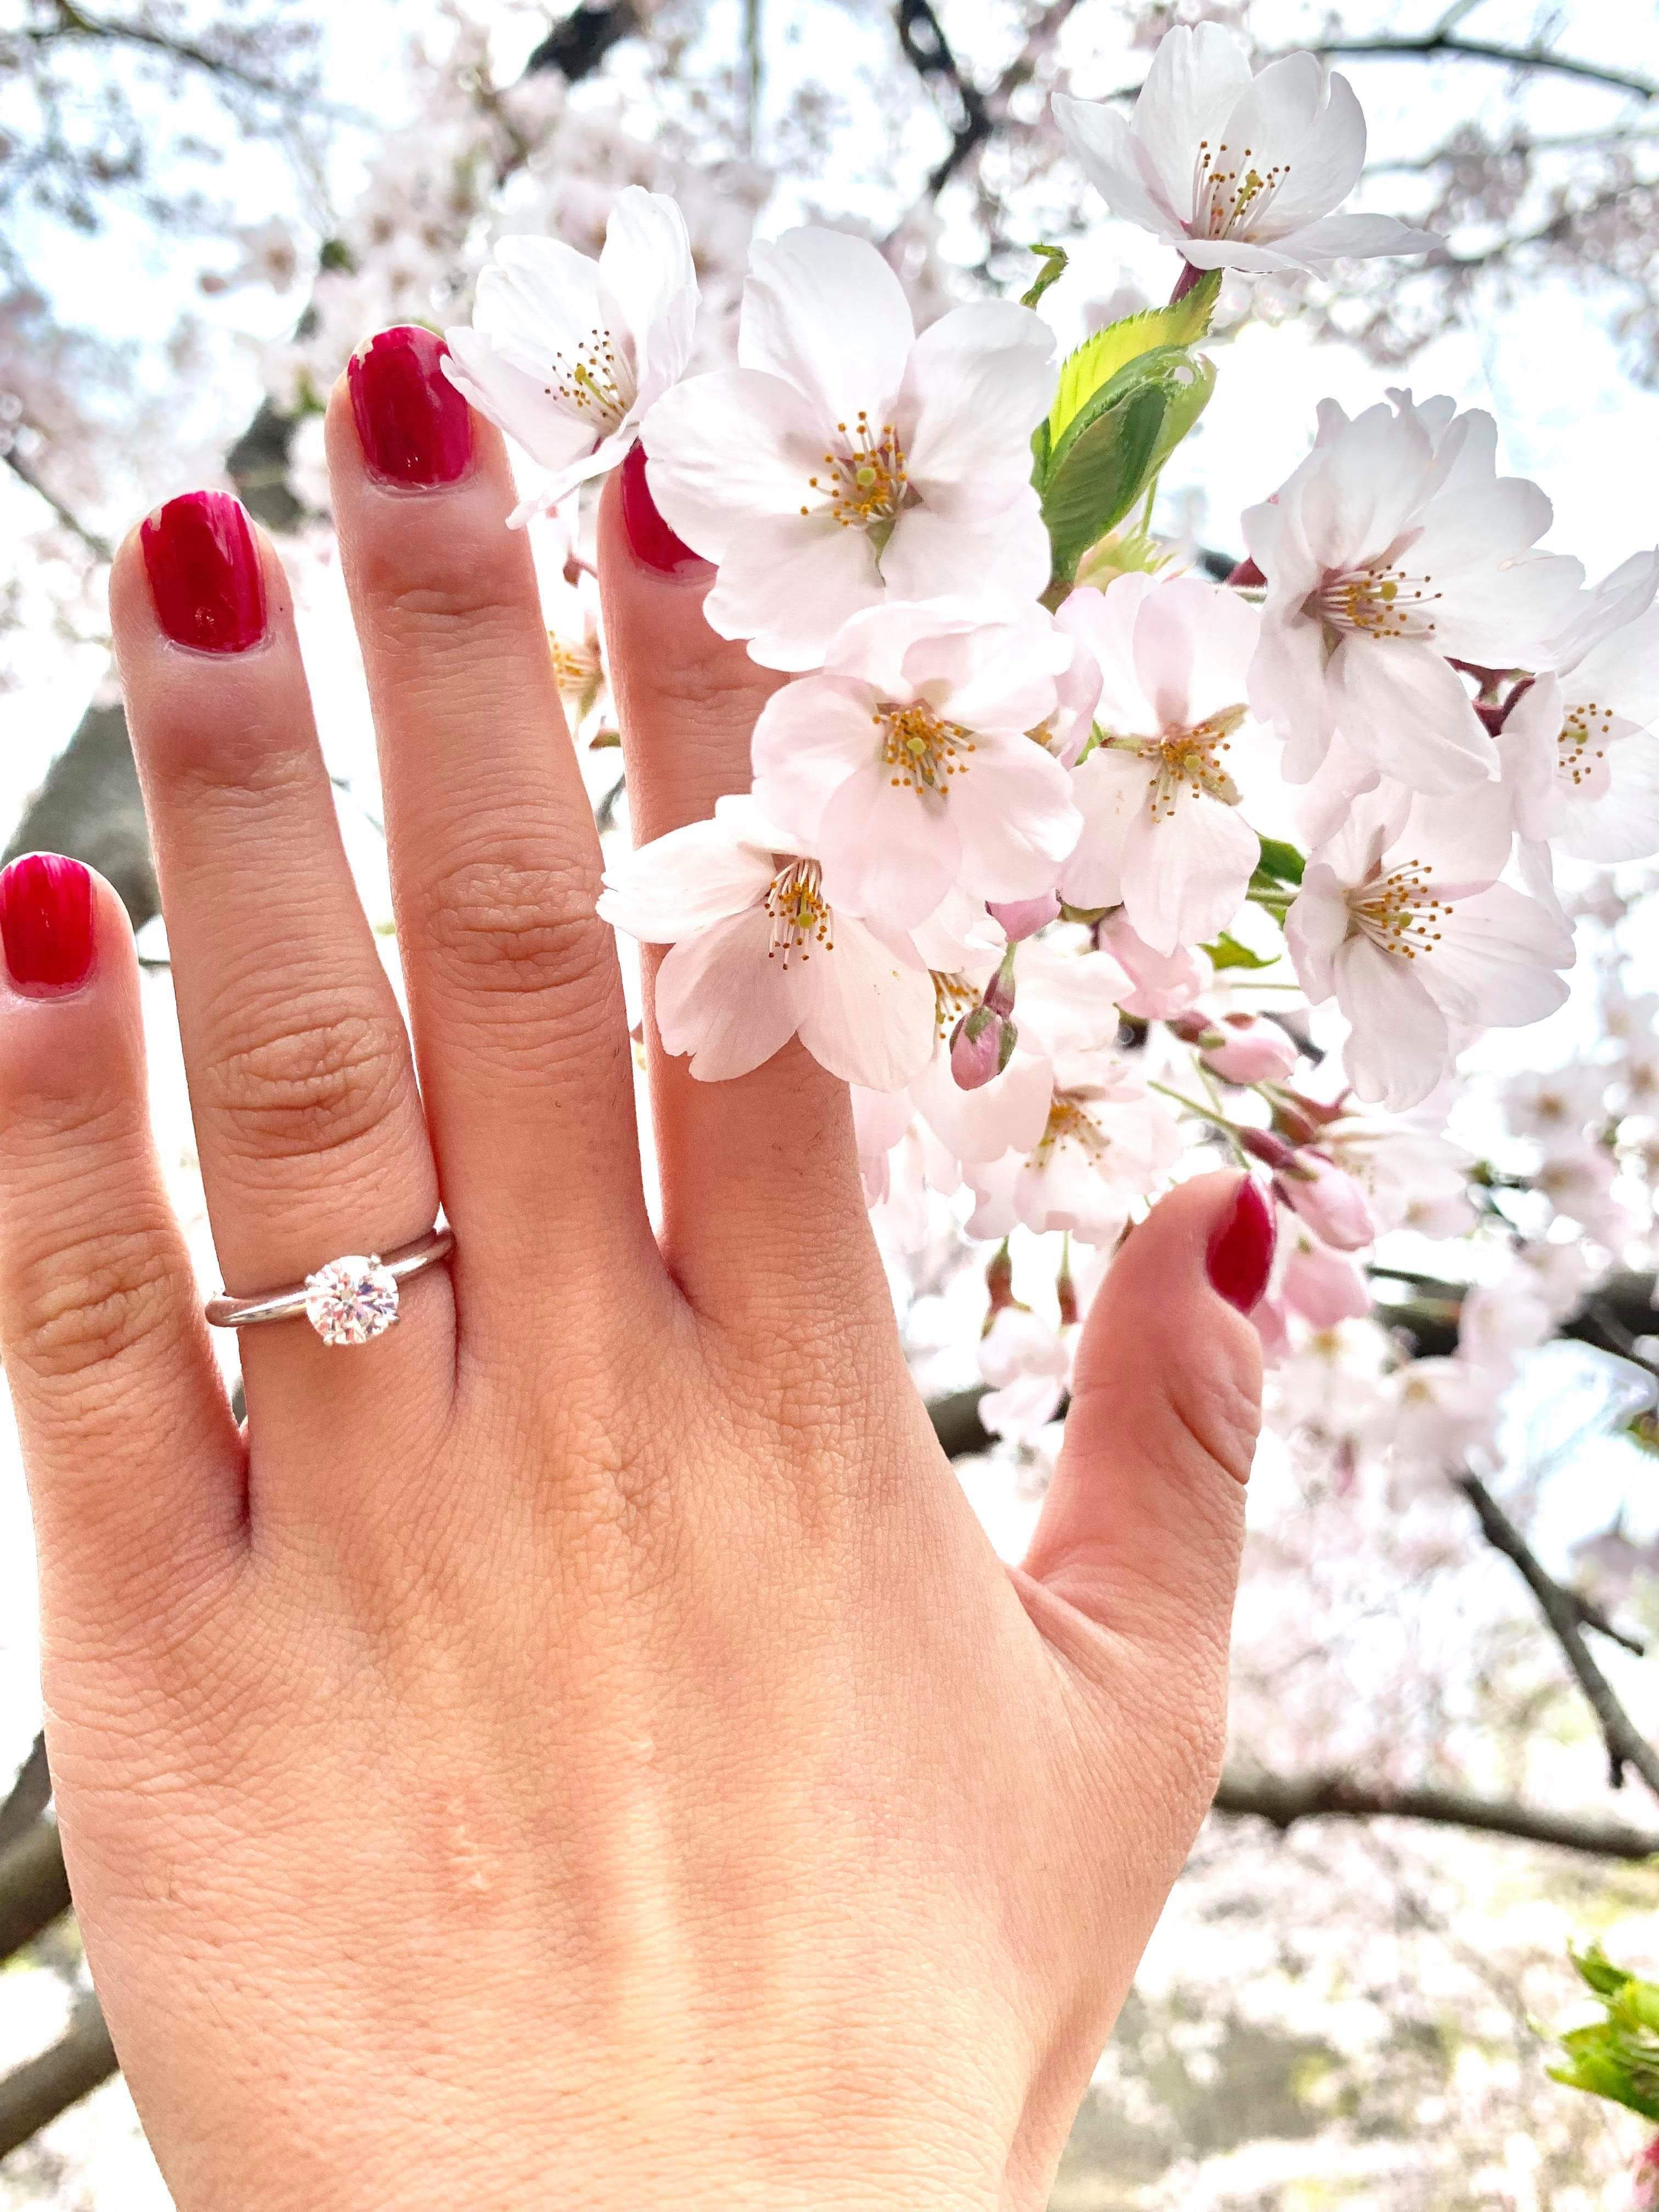 April Showers Bring Forth May Flowers - A May Proposal